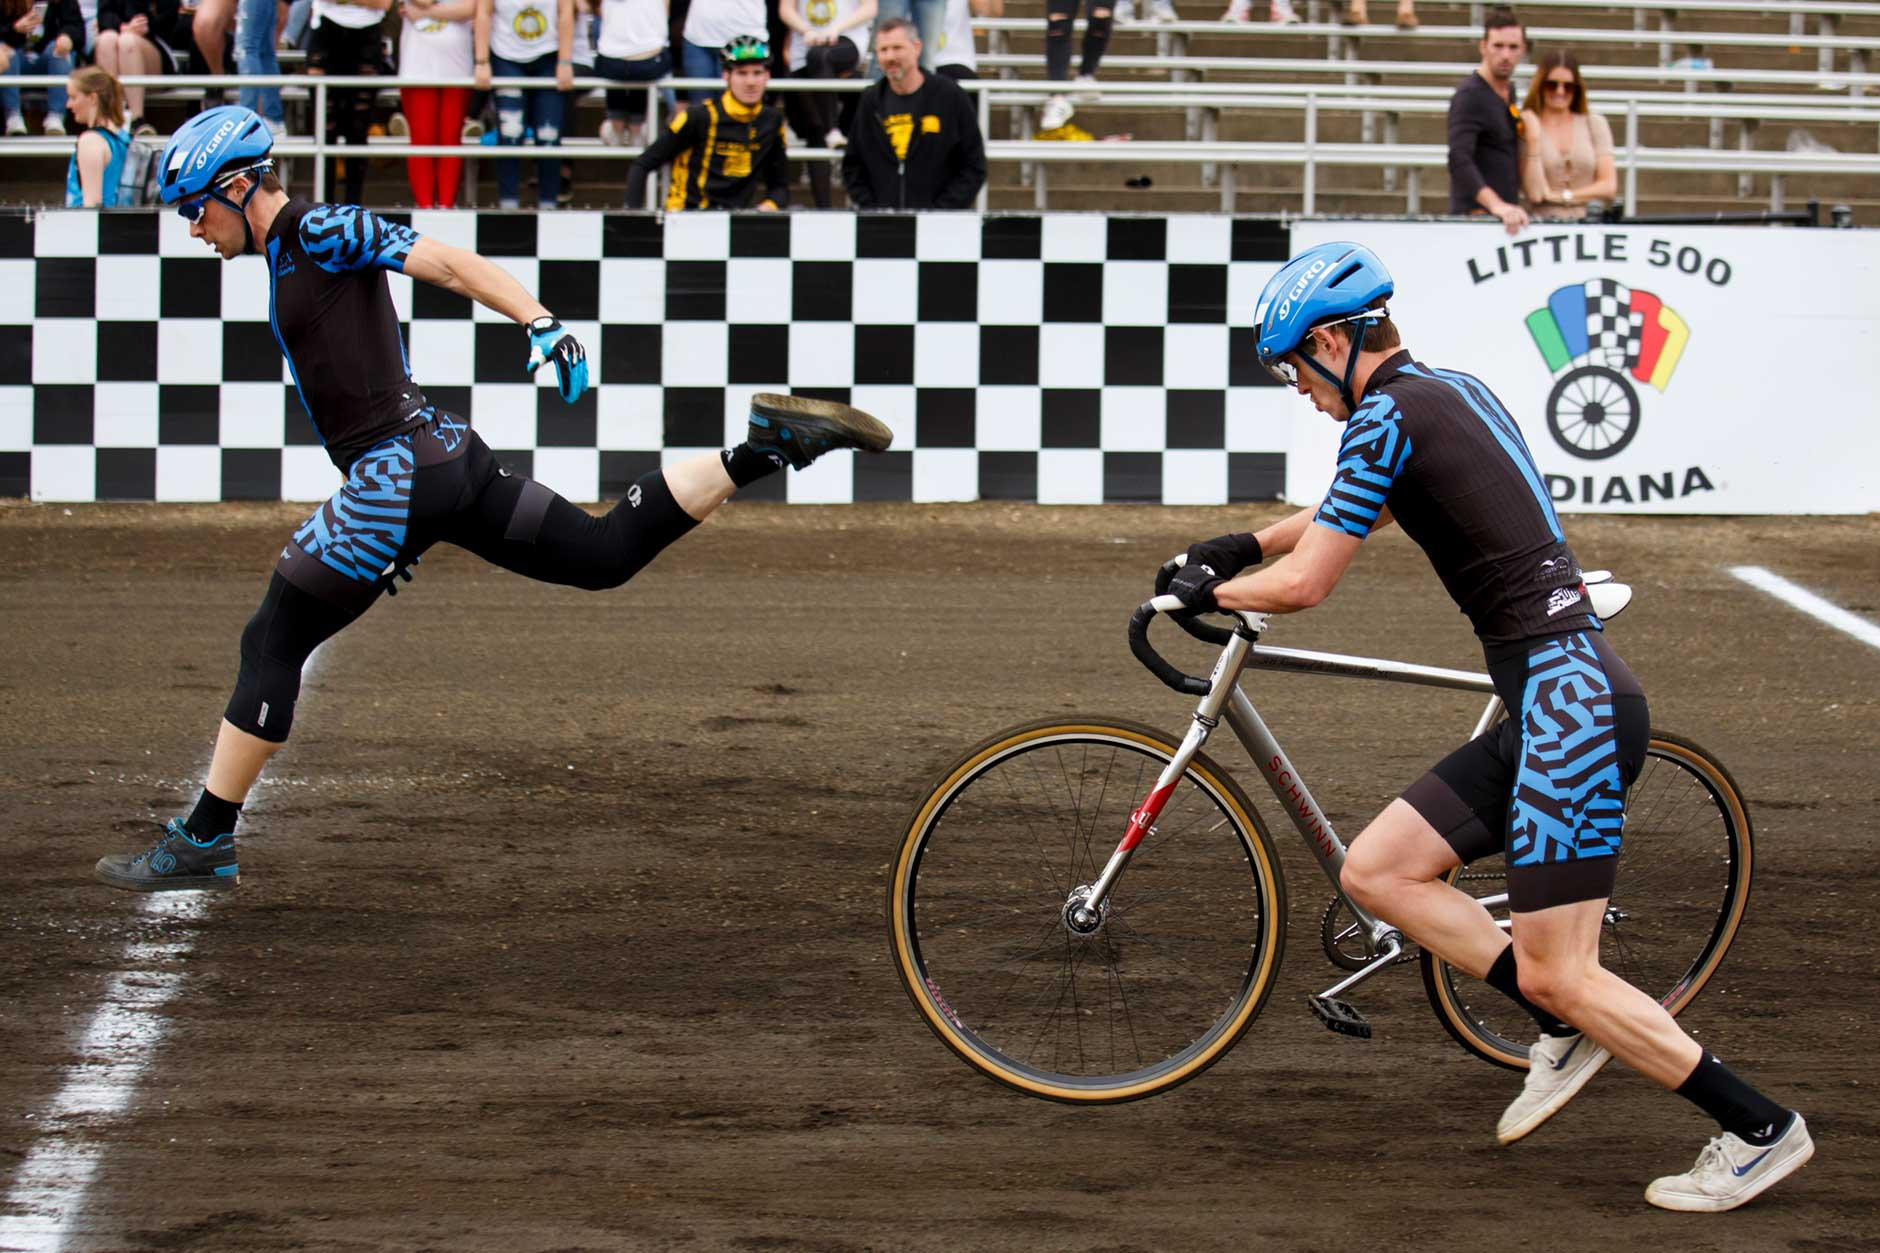 Little 500: Qualifications